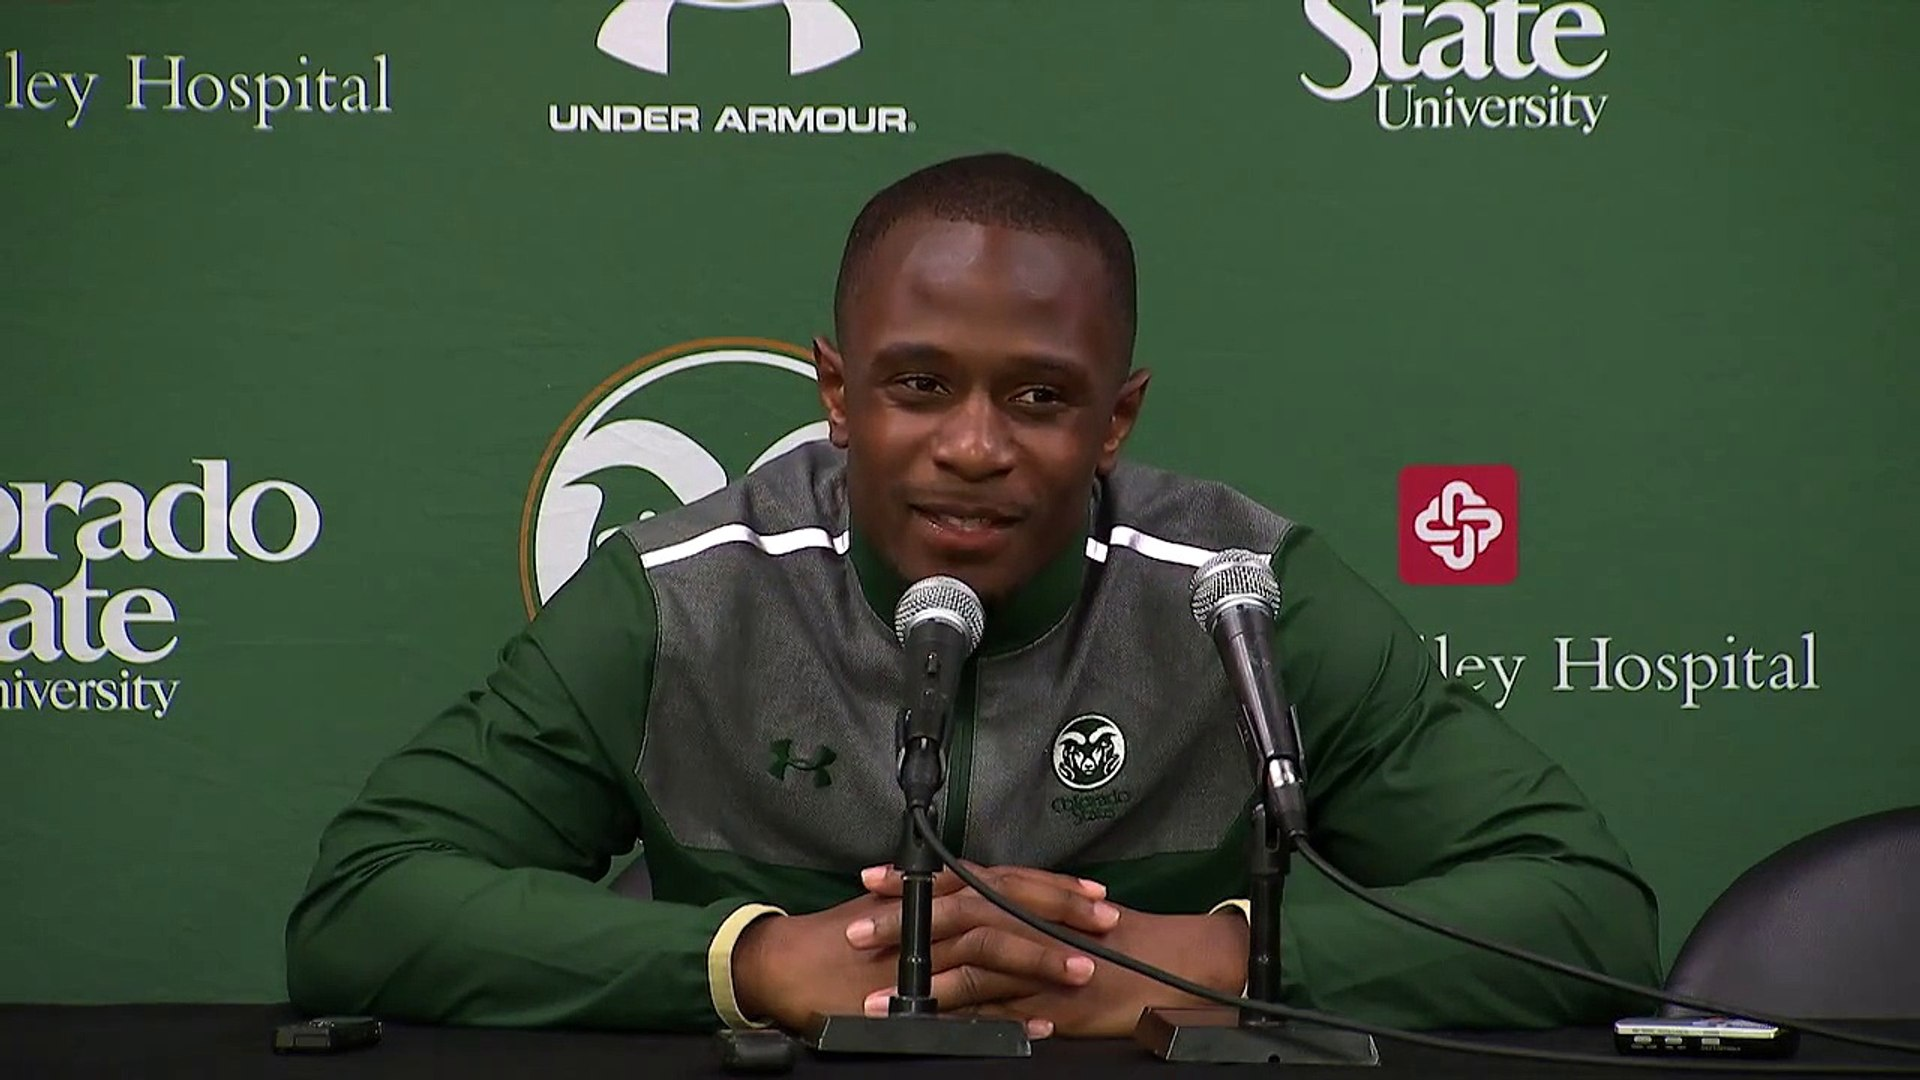 Colorado State vs. Boston College - Charles Lovett III | Postgame Press Conference